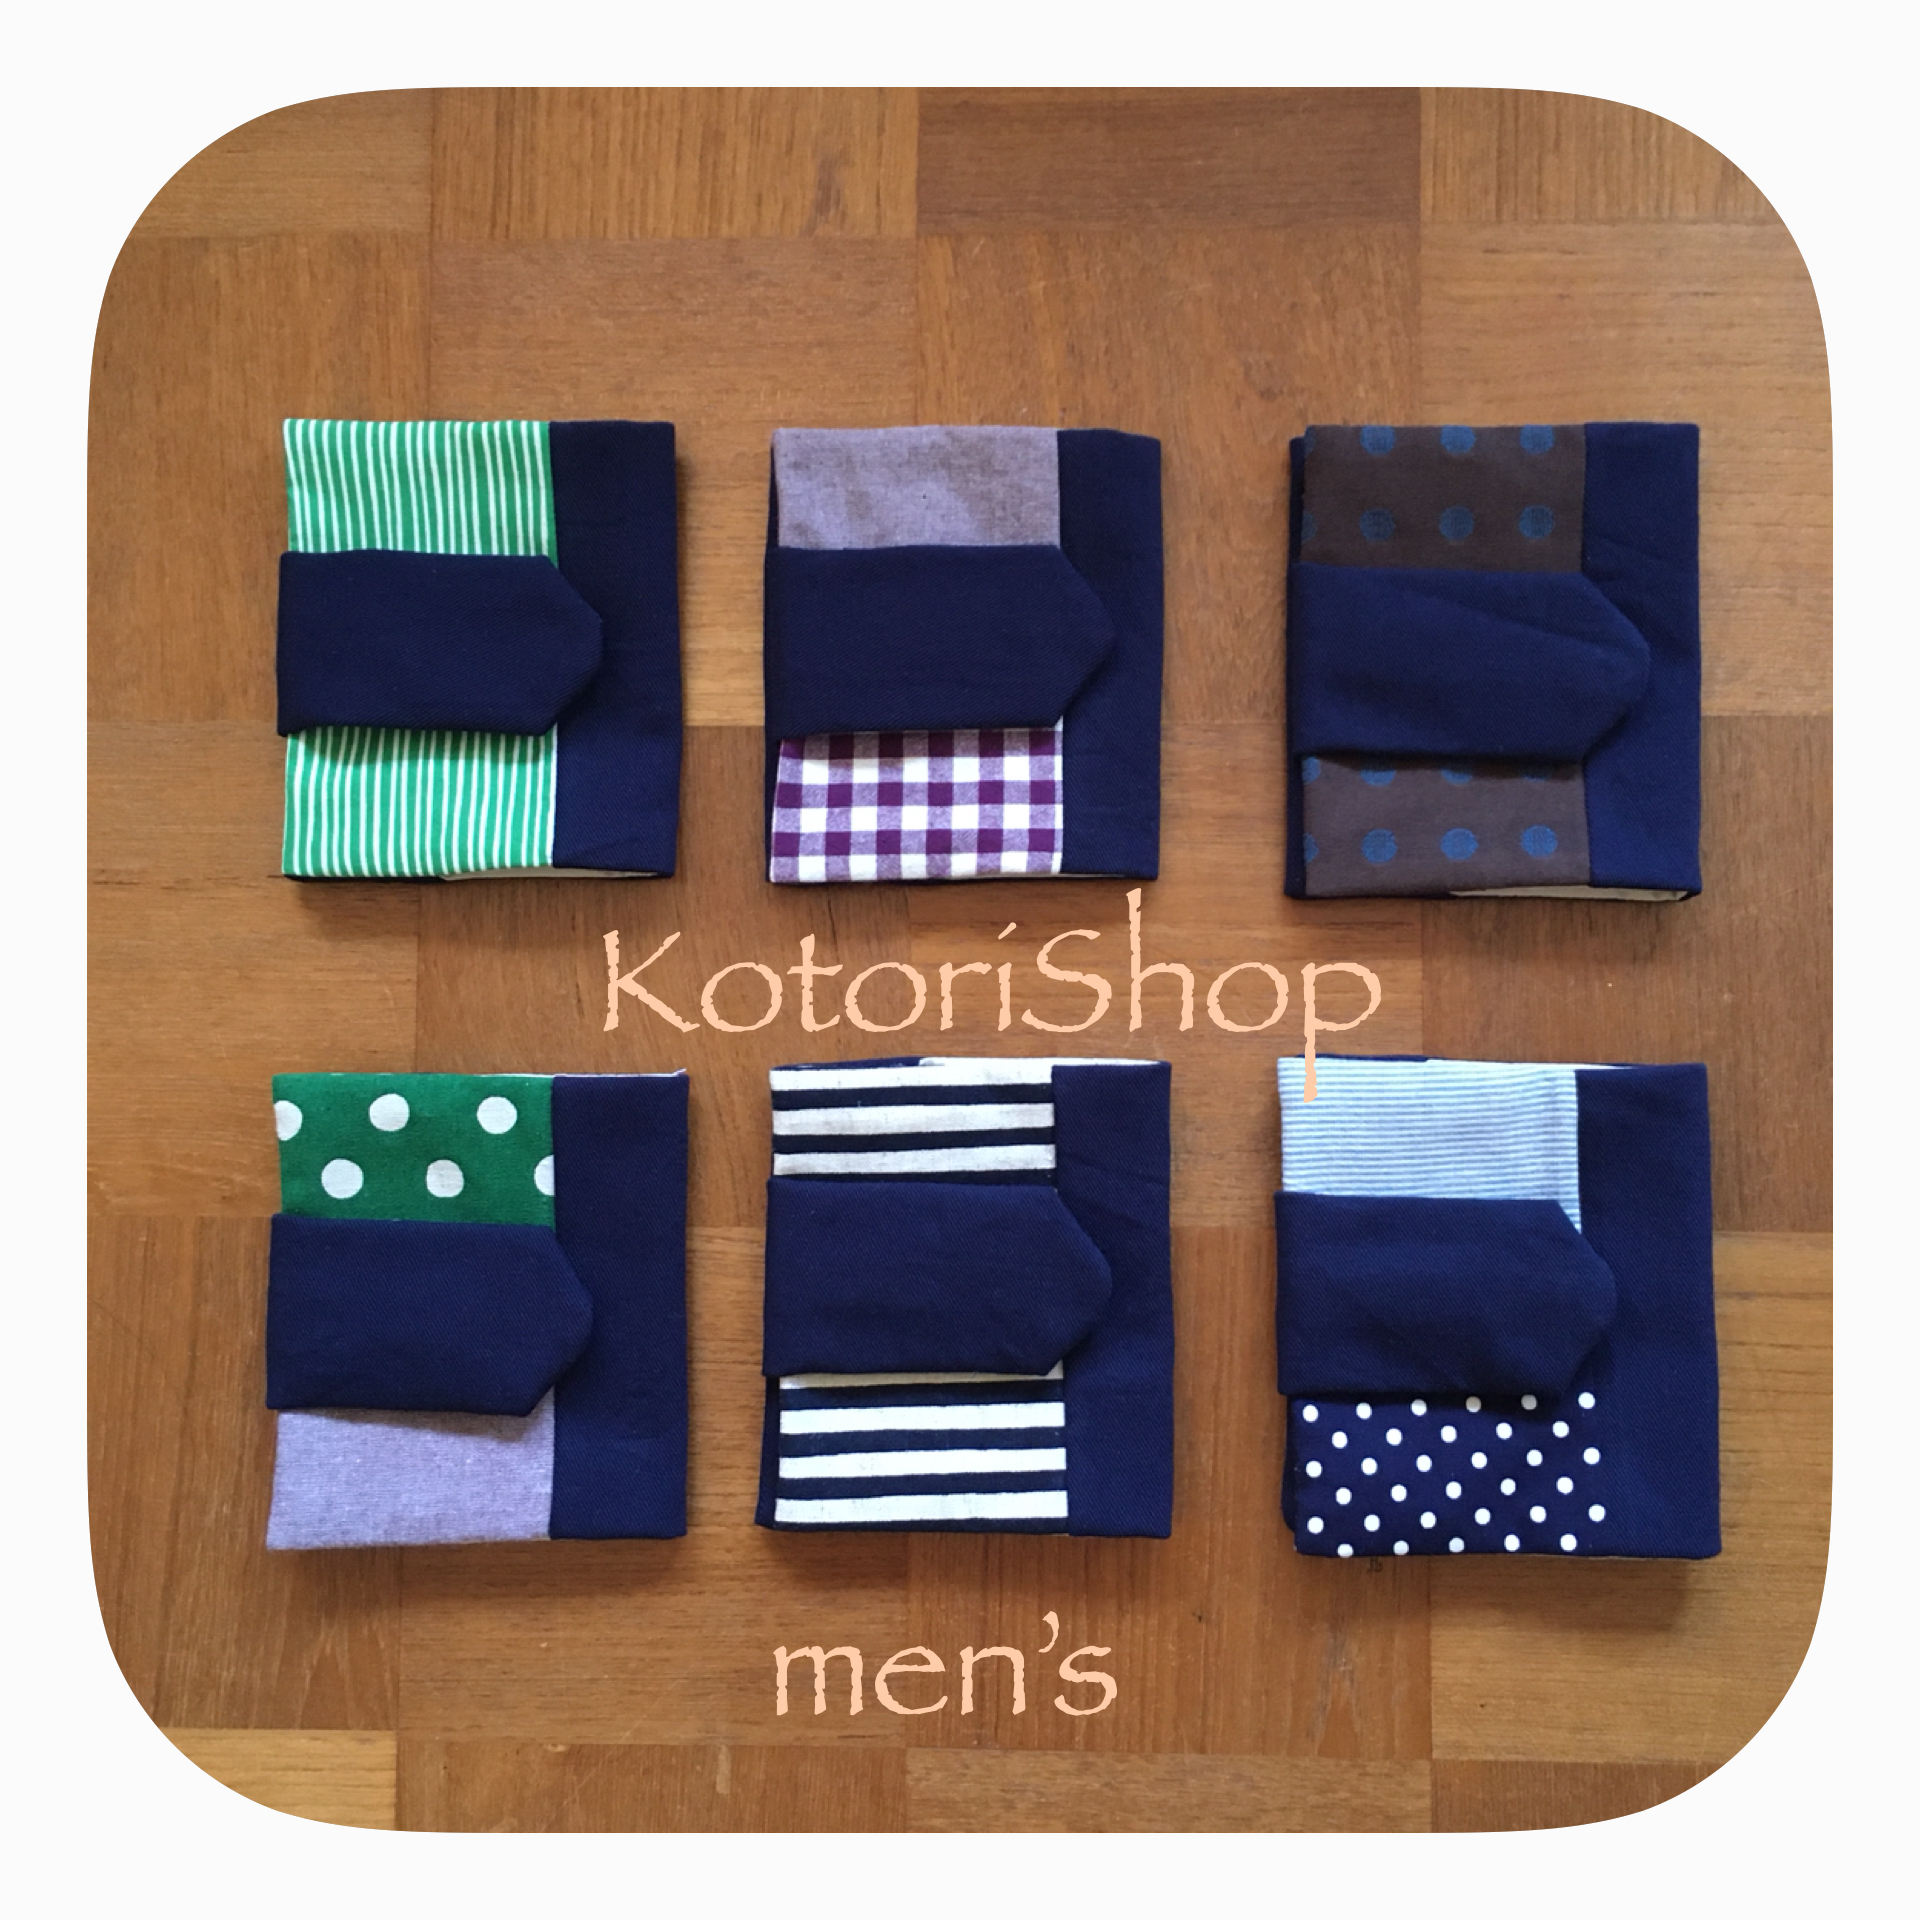 kotorishop men's